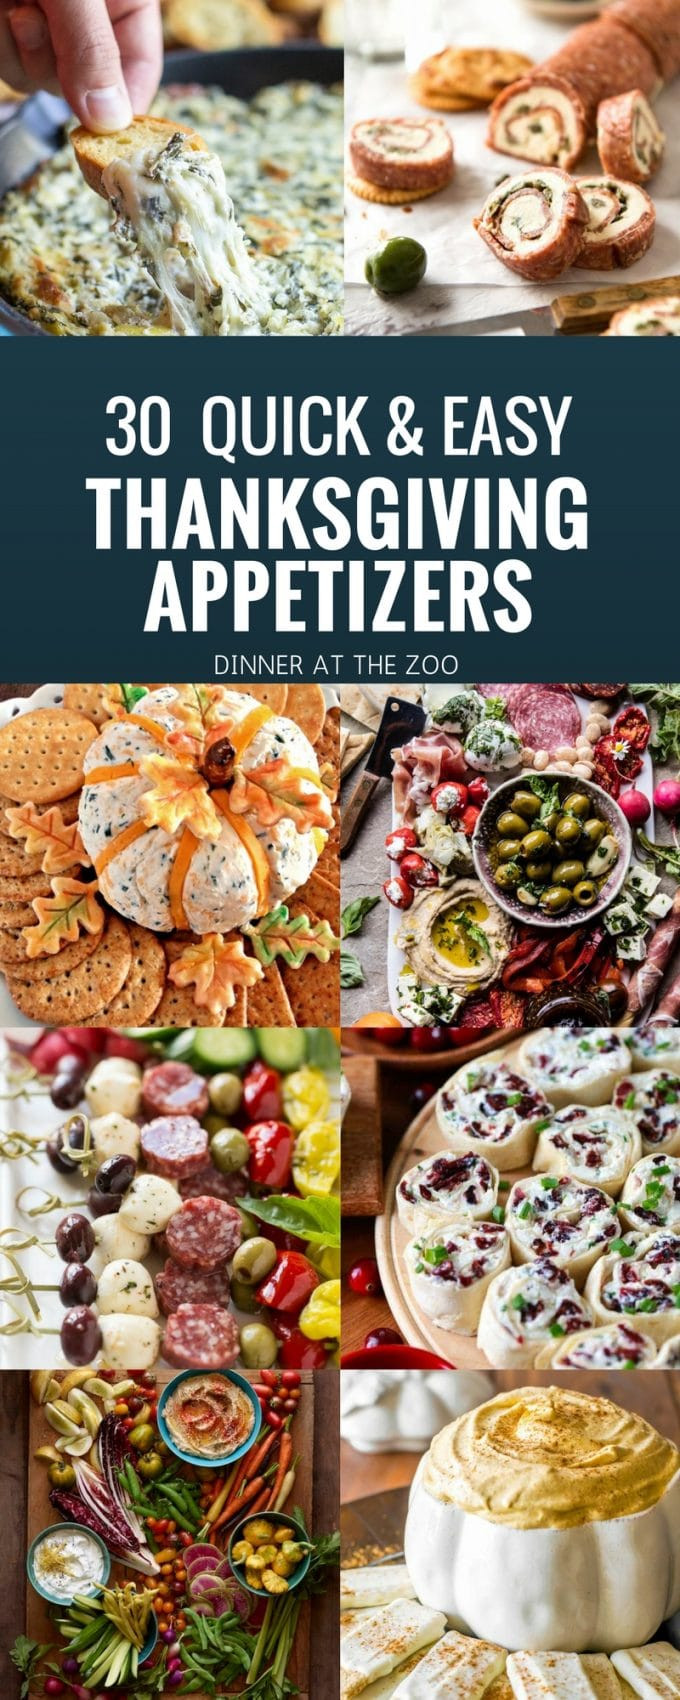 Simple Thanksgiving Appetizers  30 Thanksgiving Appetizer Recipes Dinner at the Zoo